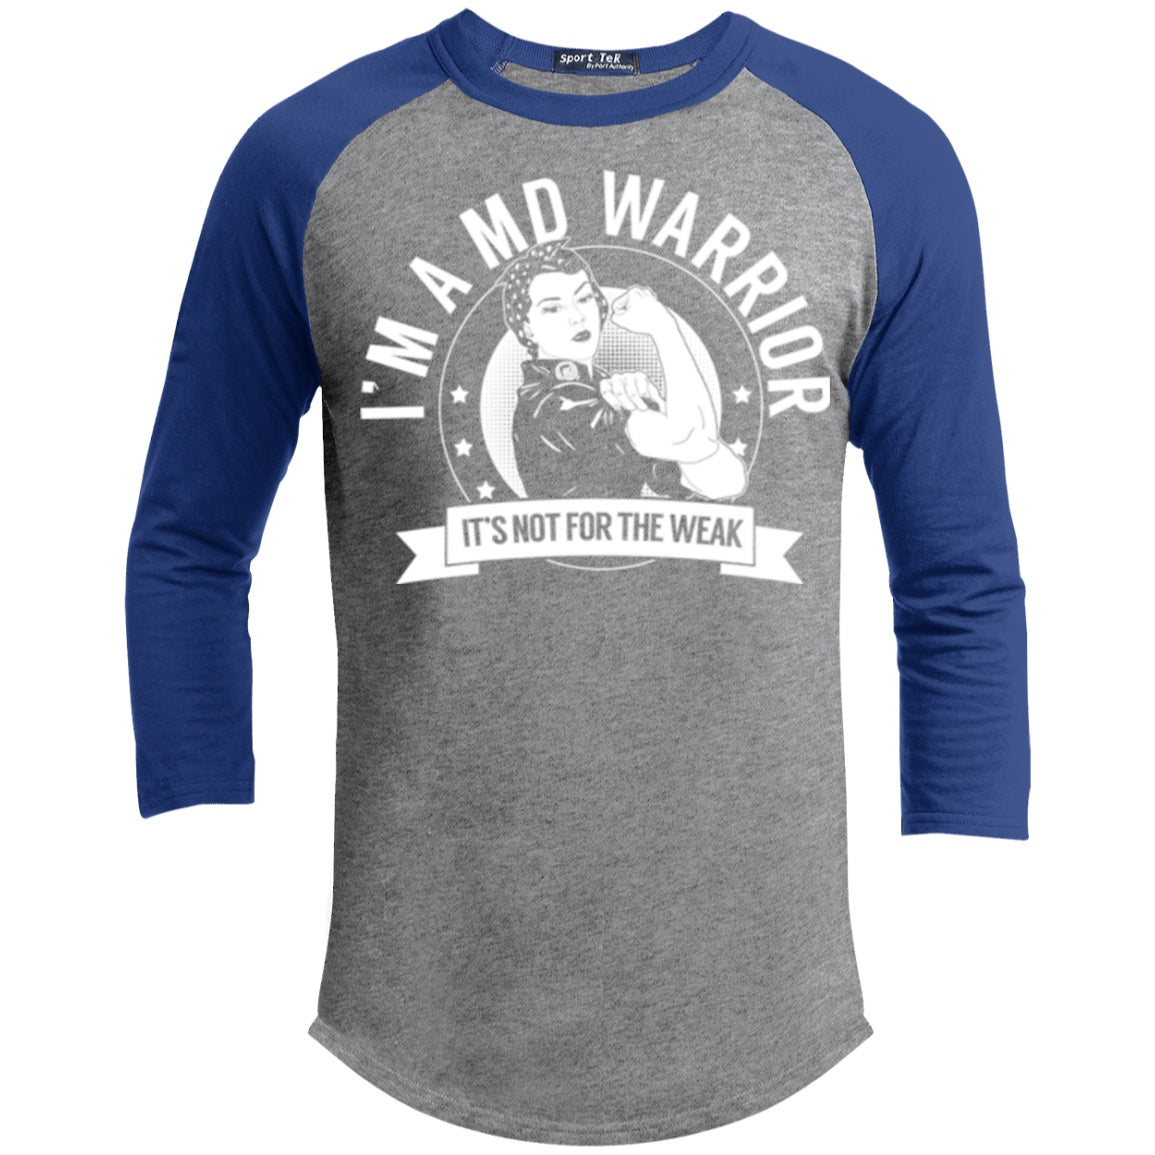 Muscular Dystrophy - MD Warrior Not For The Weak Baseball Shirt - The Unchargeables